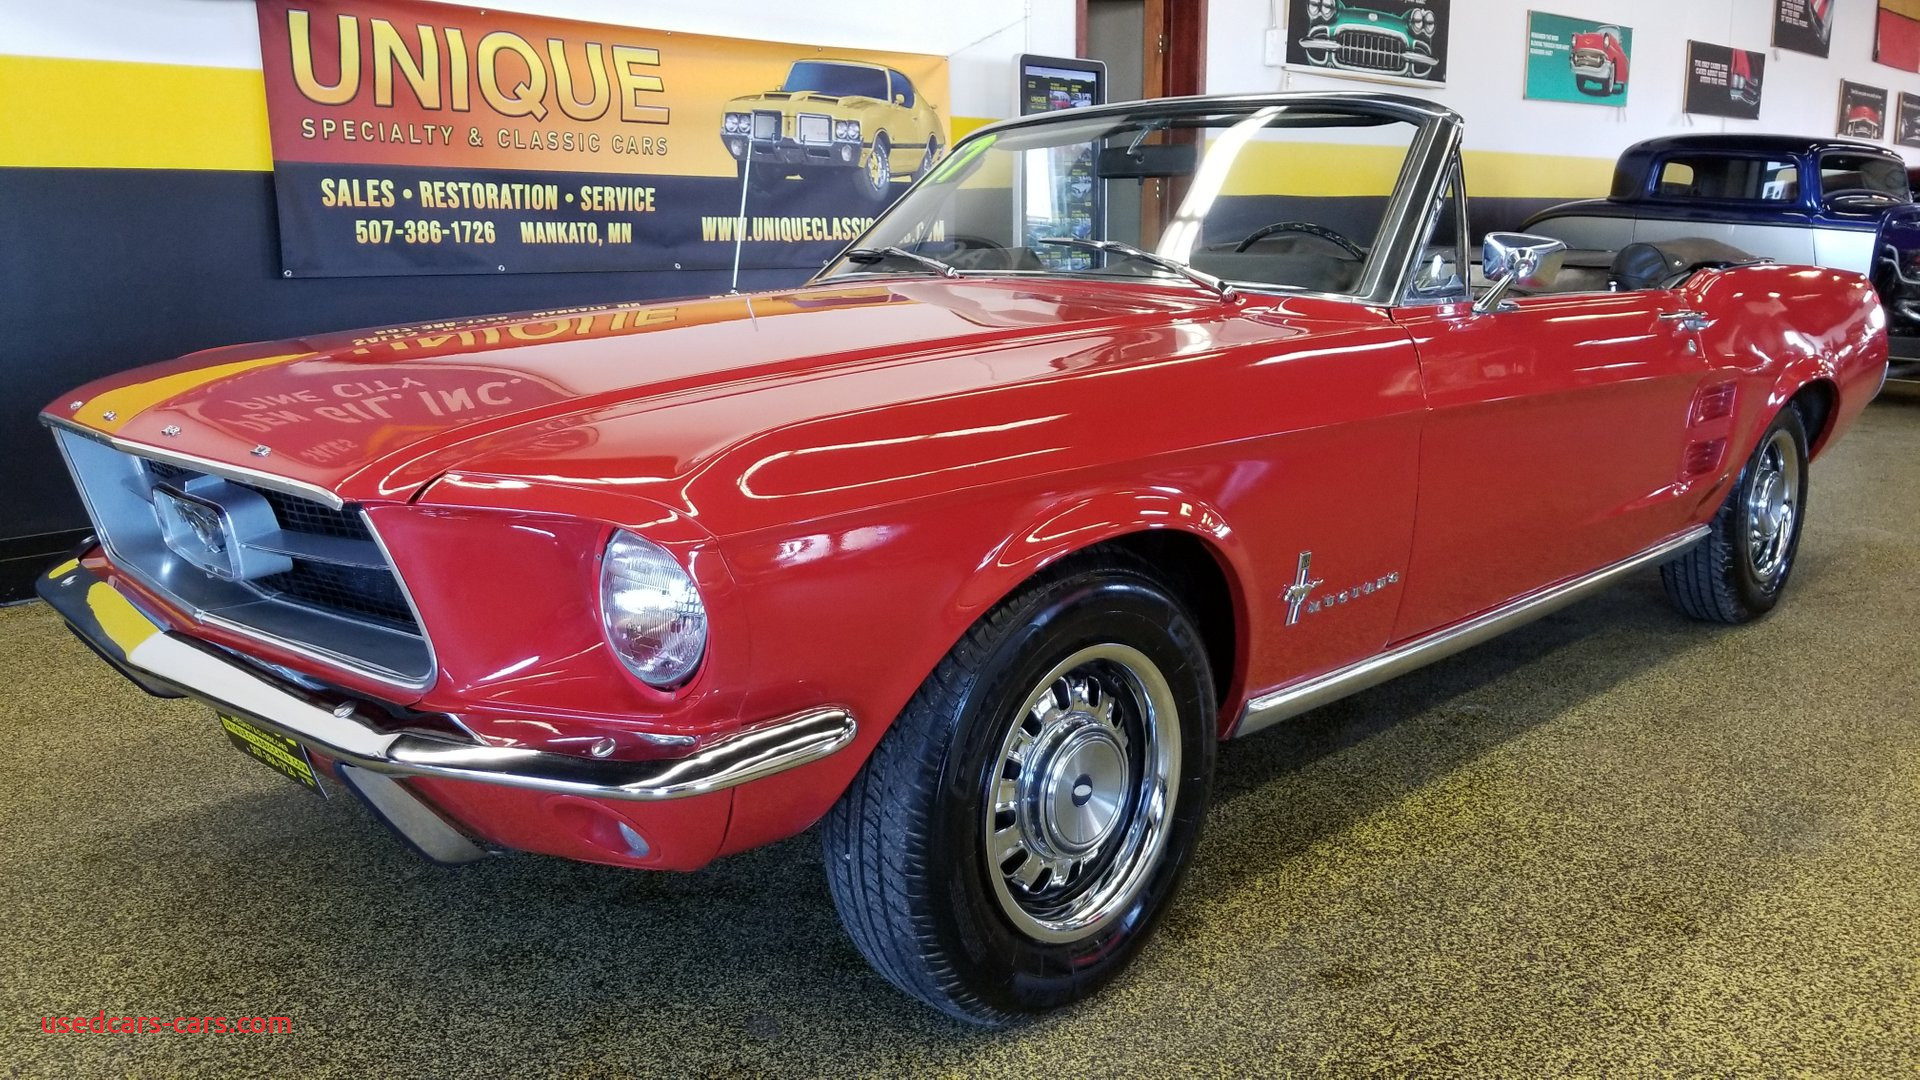 1967 ford Mustang Convertible Fresh 1967 ford Mustang Convertible for Sale